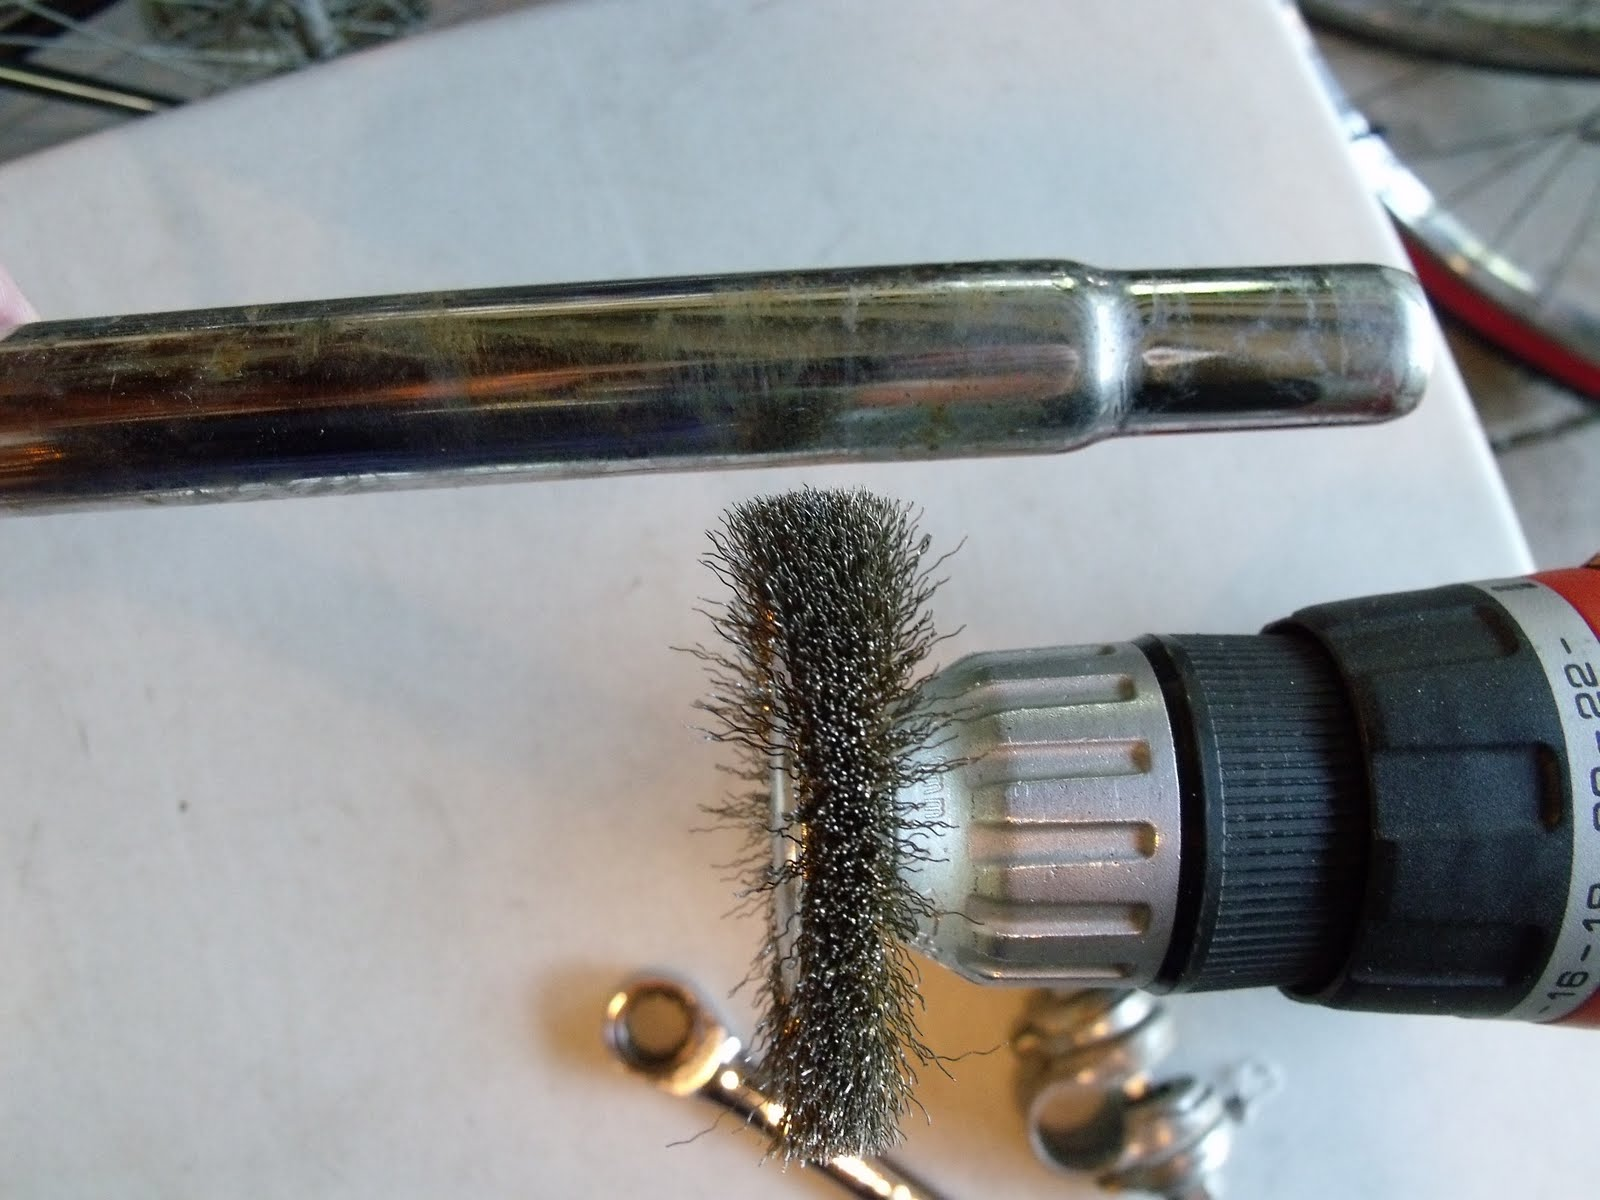 Hugh`s bicycle blog: Removing Surface Rust using Brass Brushes